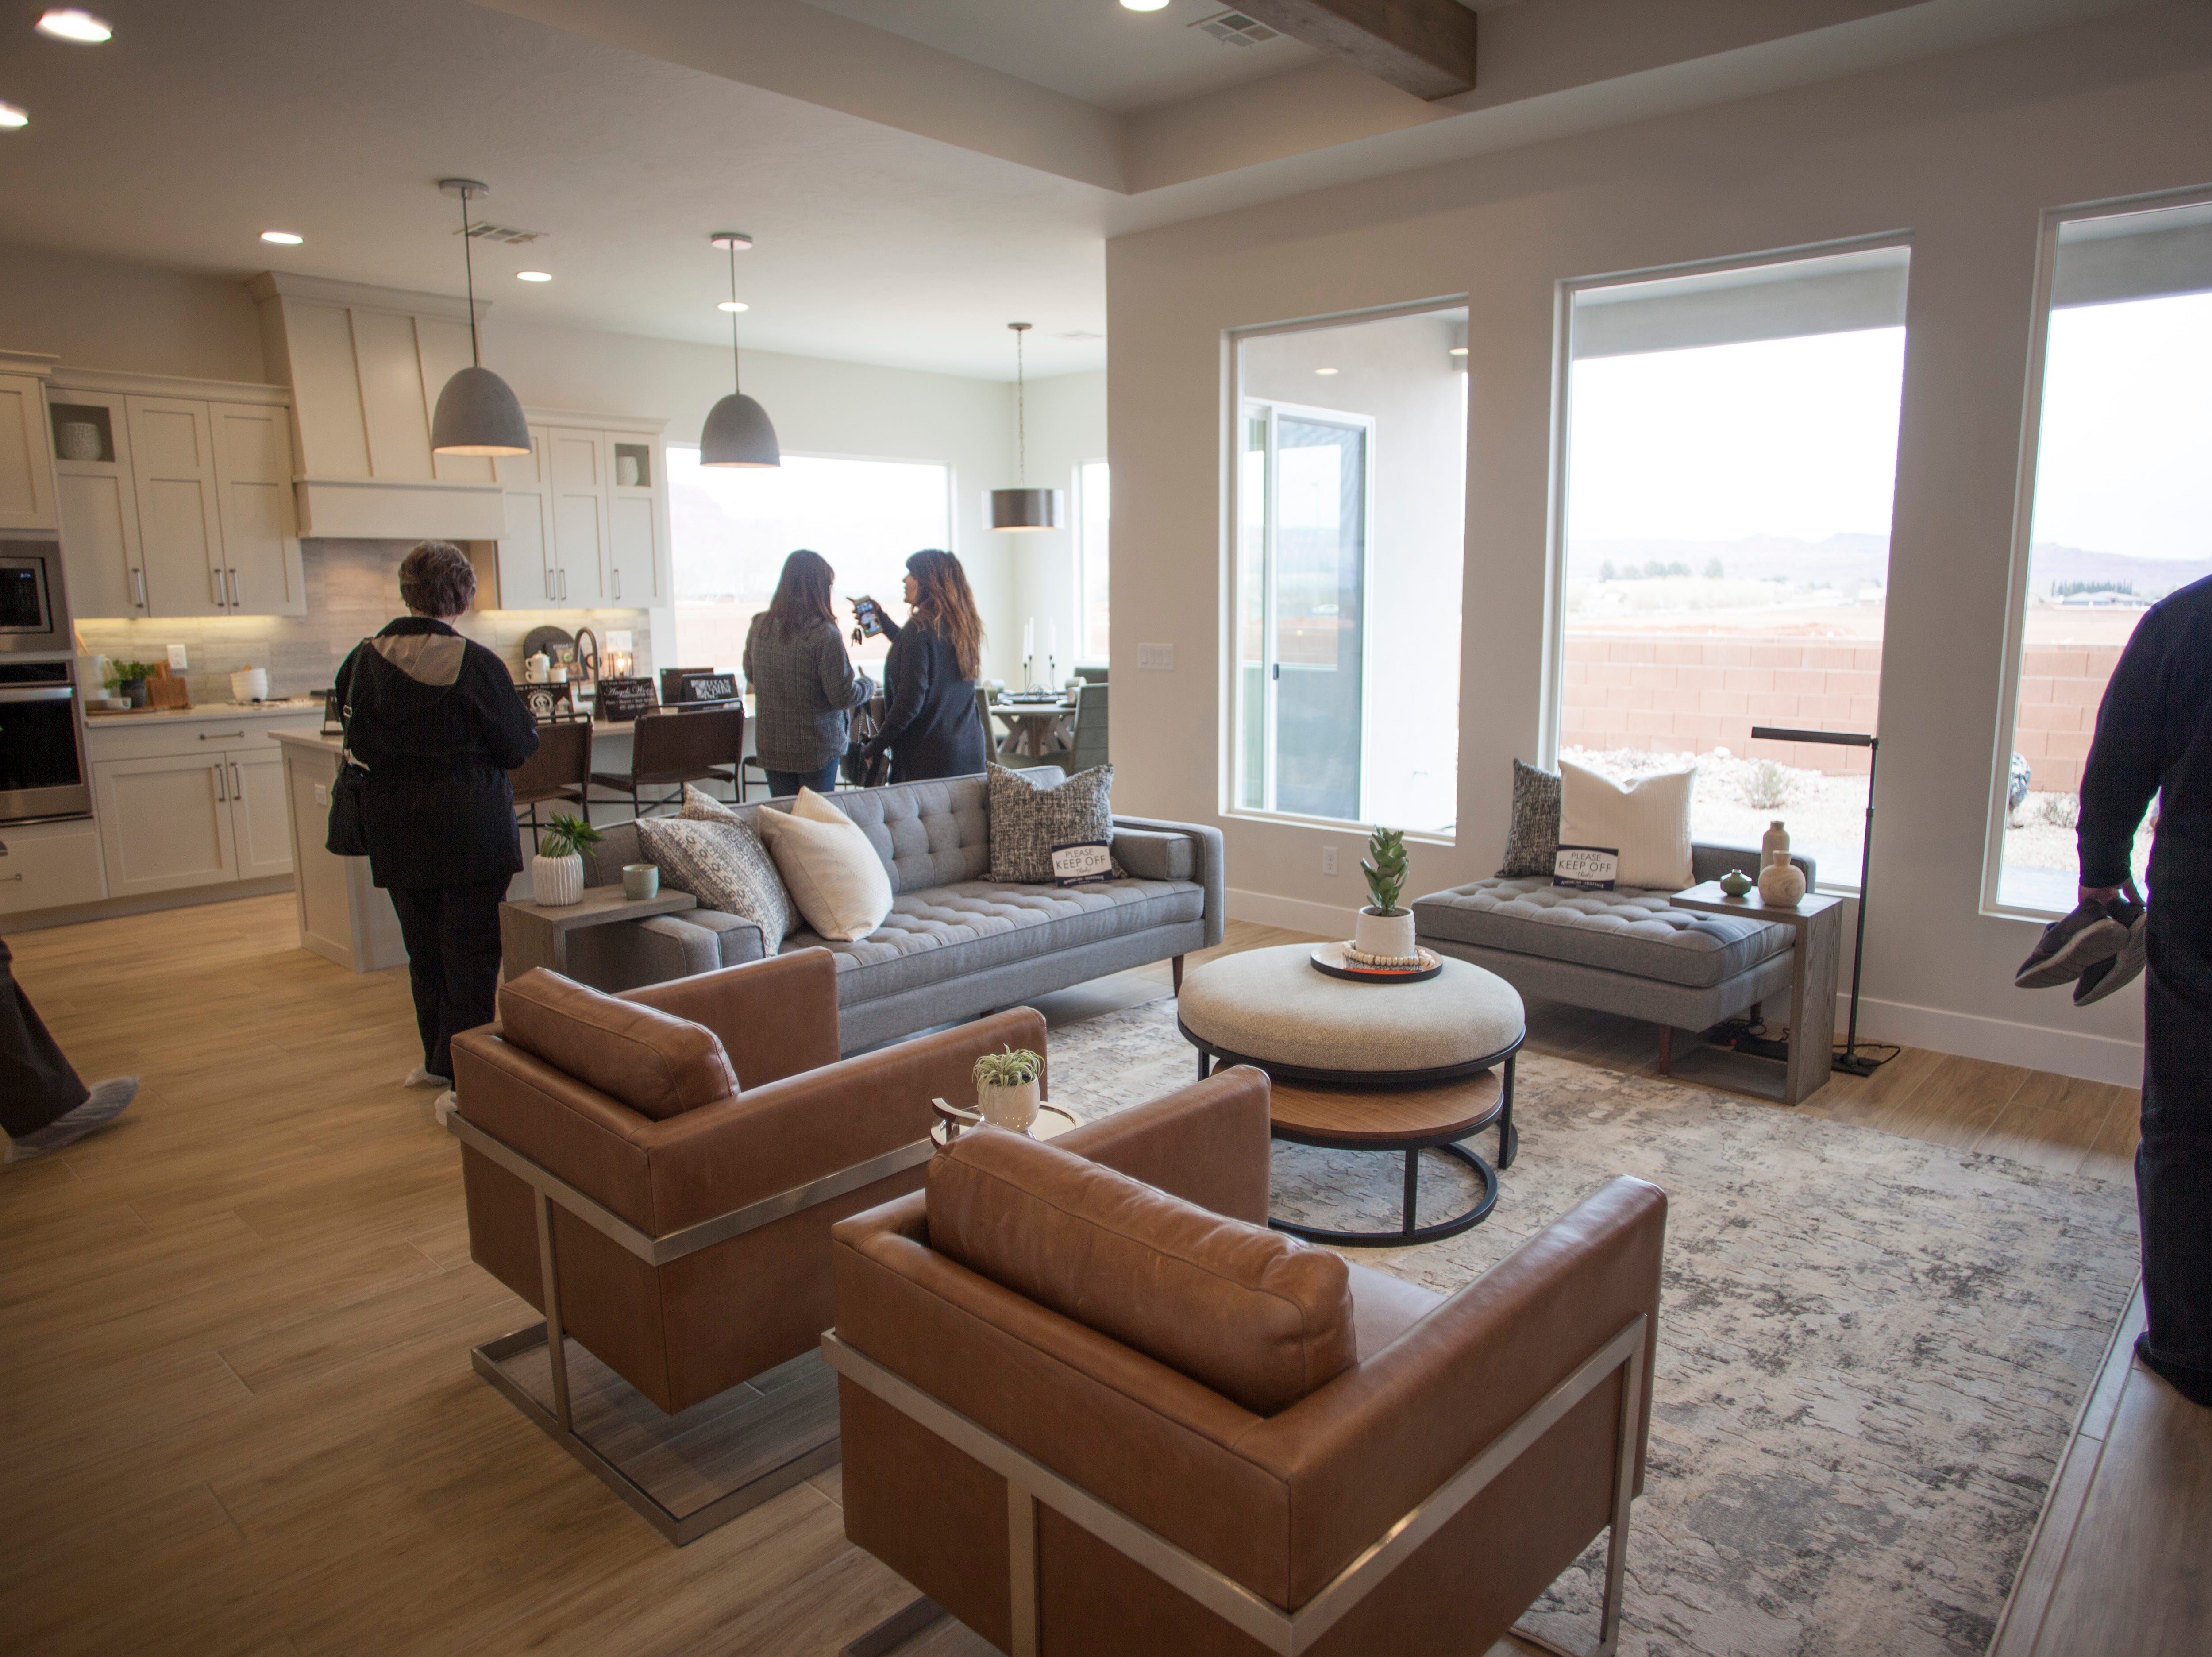 House number 18, The Haven at Heritage Acres, on the 2019 Parade of Homes Saturday, Feb. 23, 2019.